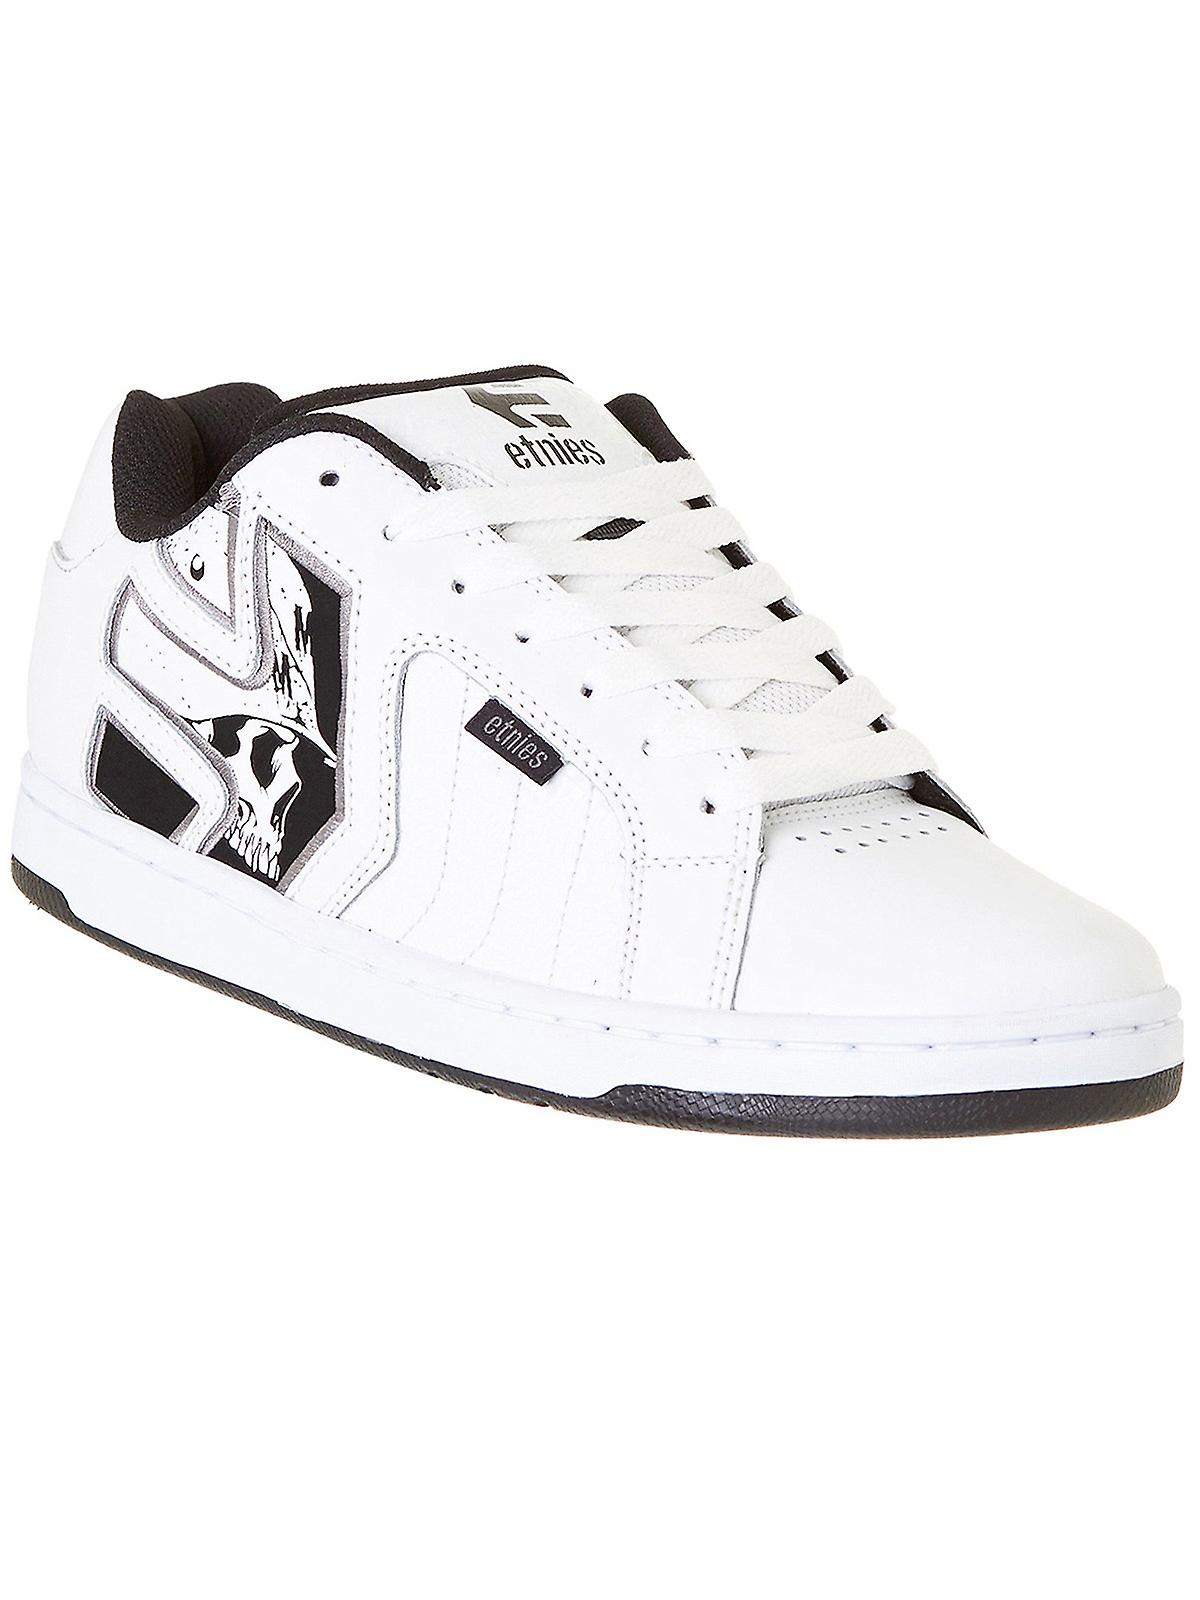 Etnies Mulisha Metal Mulisha Etnies White-Black-Grey Fader 2 Shoe 4b4d1f